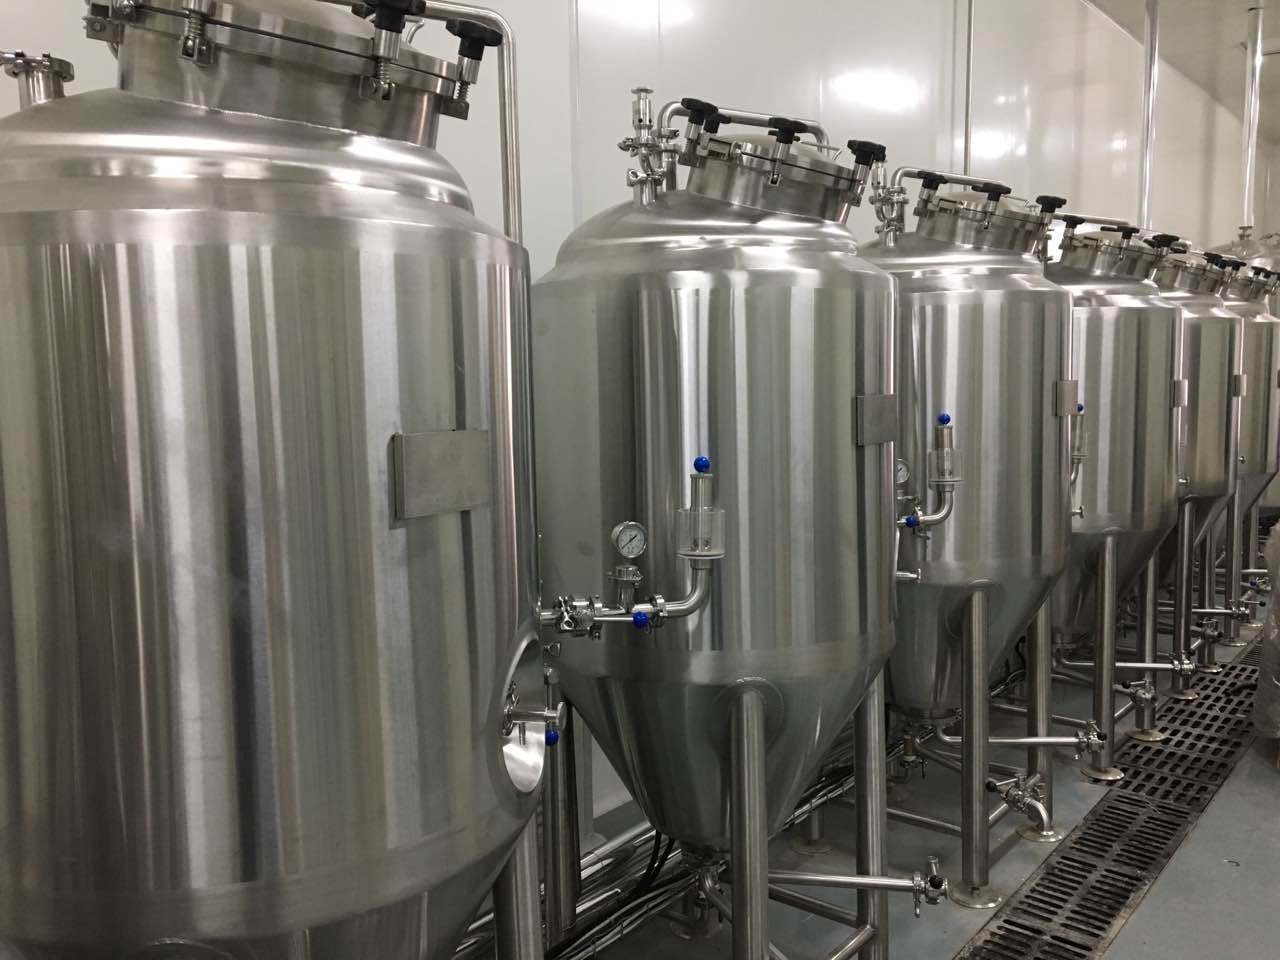 100gal 200gal jacketed stainless steel fermenter for beer brewing supplier  ZXF